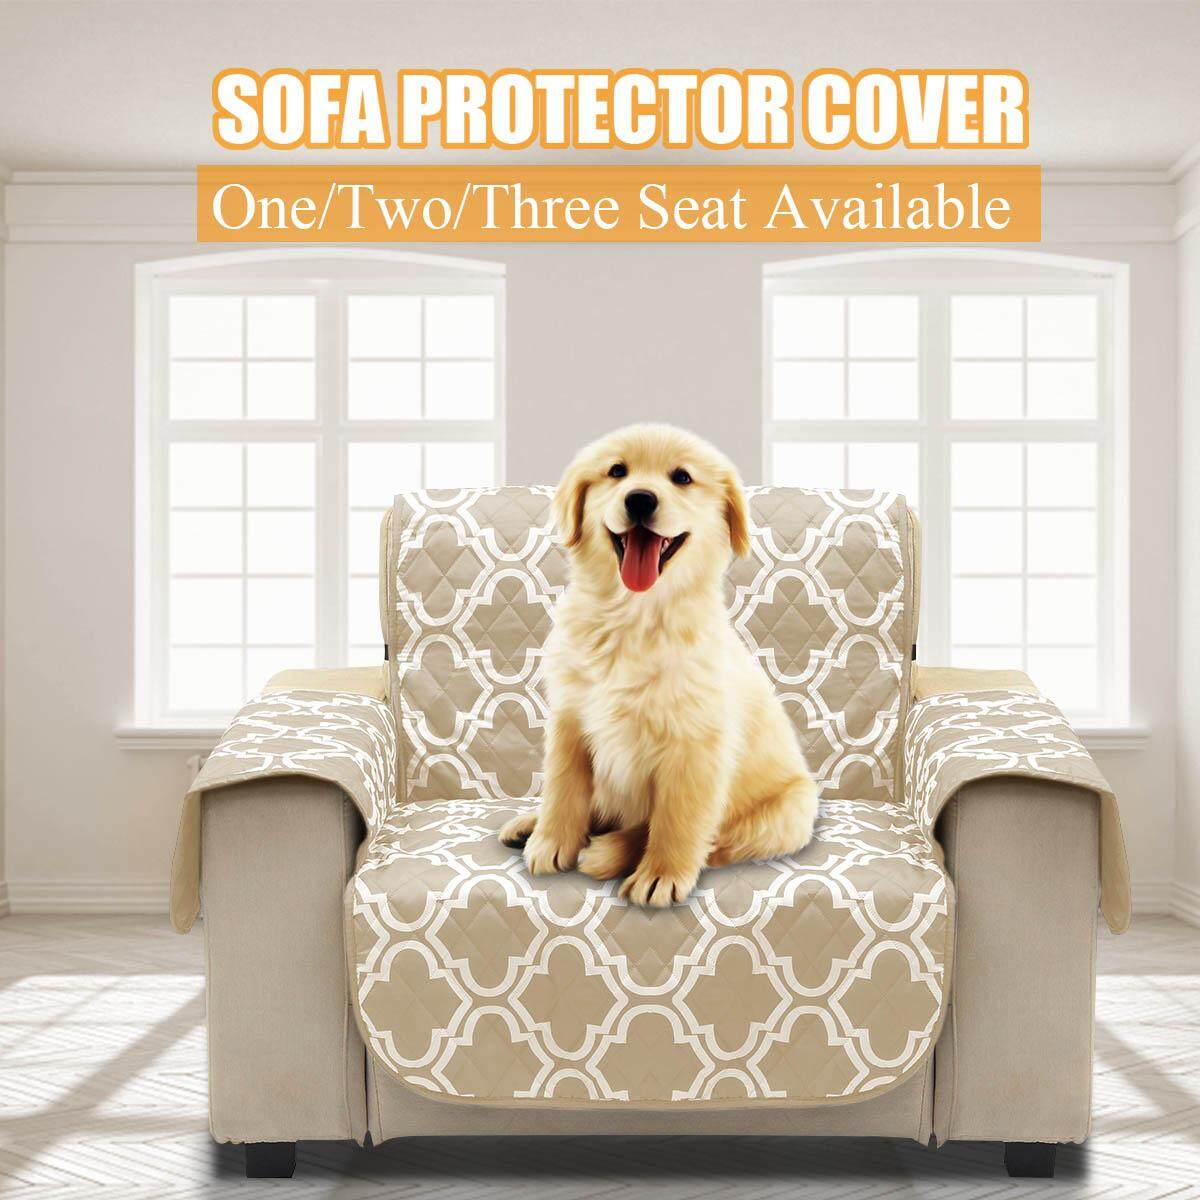 1/2/3 Seater Microfiber Pet Dog Kids Couch Sofa Furniture Protector Cover Strap Waterproof